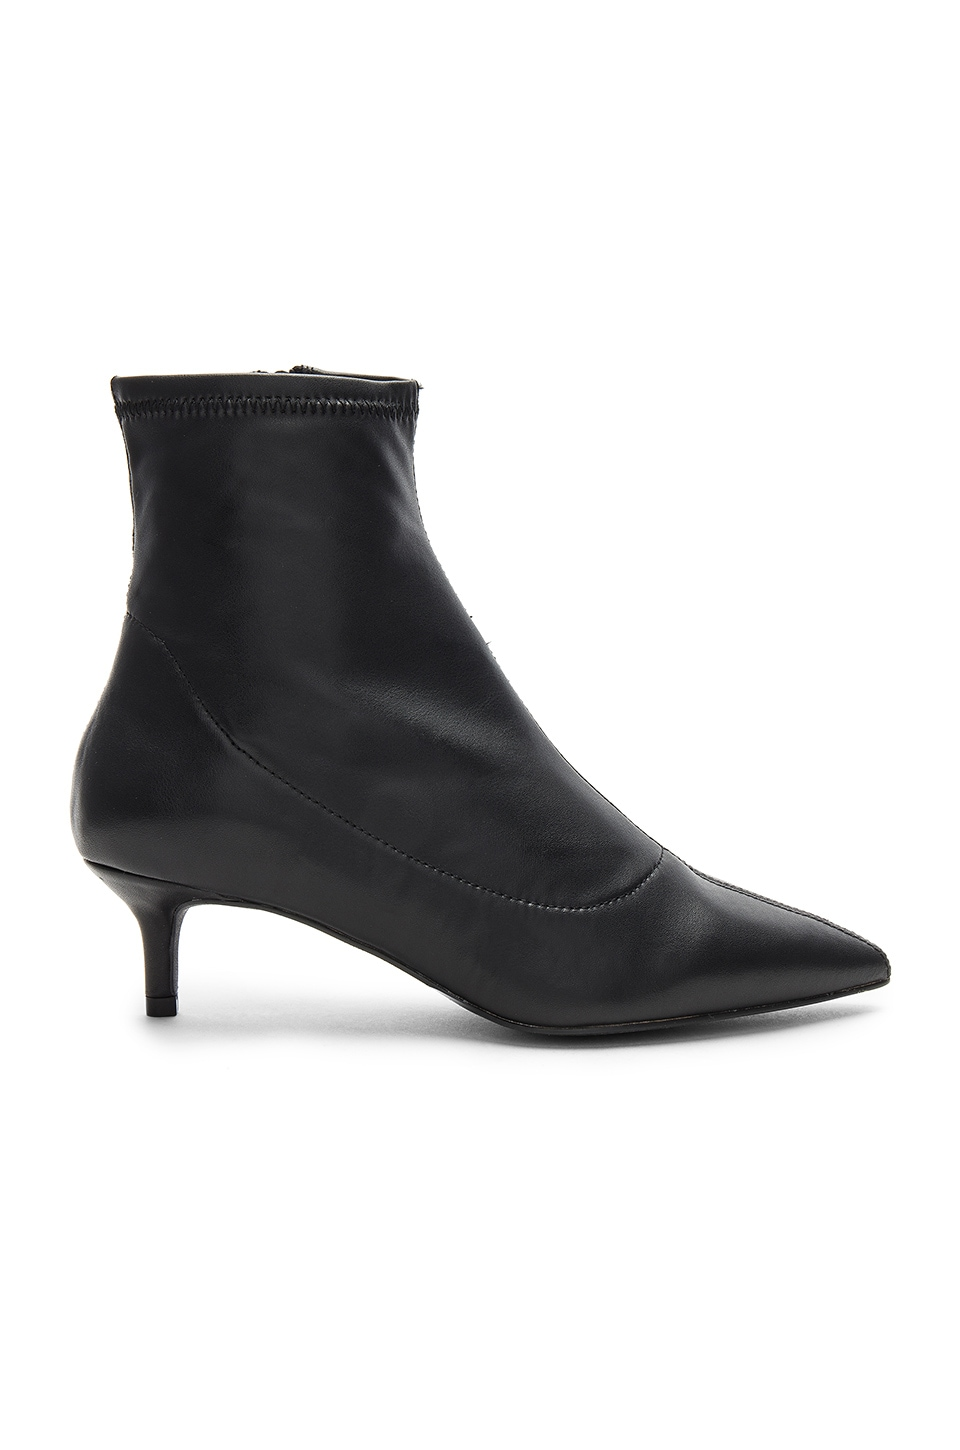 Free People Marilyn Kitten Heel Boot in Black